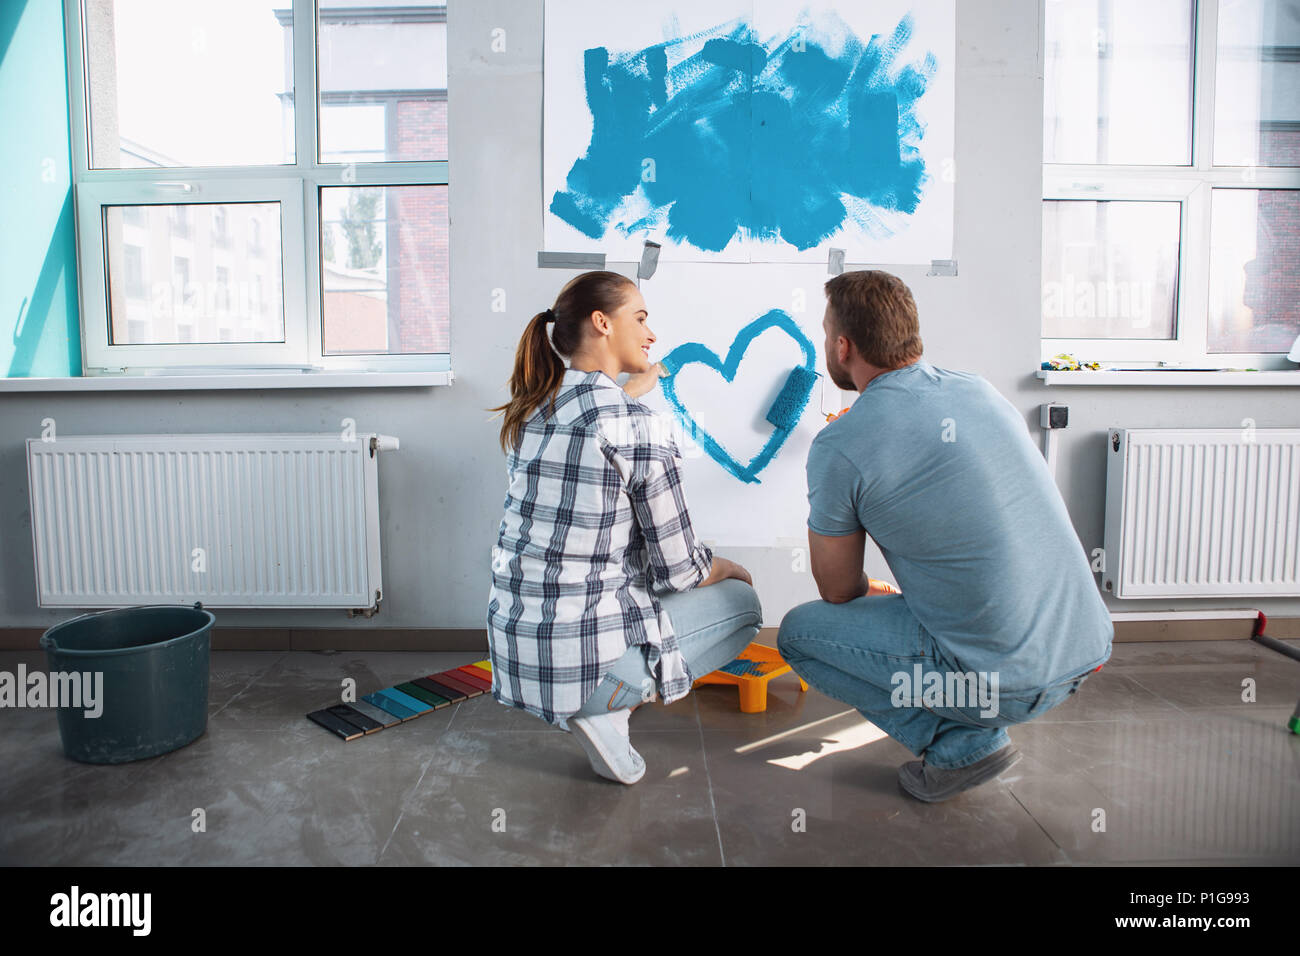 Cheerful loving woman painting a heart for her man - Stock Image